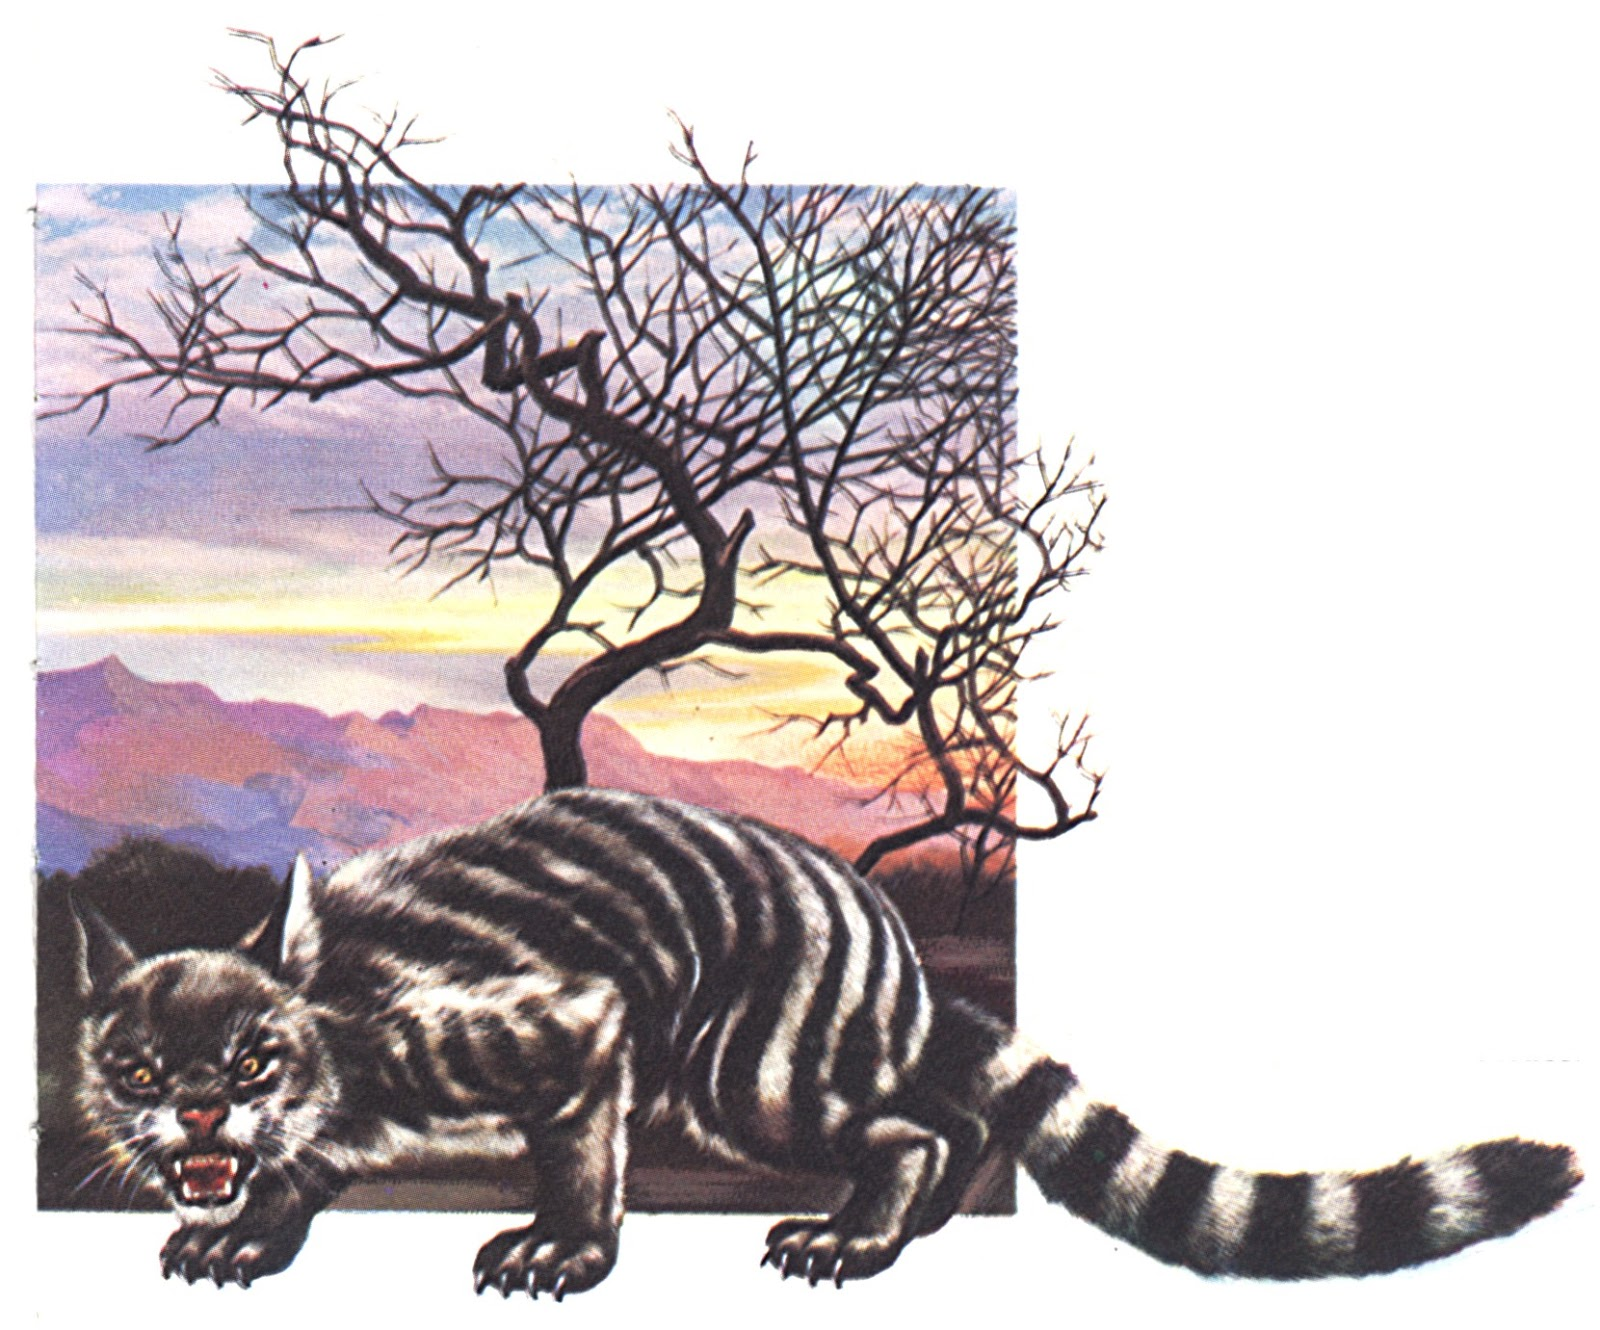 Is the Maltese blue tiger a myth or a reality